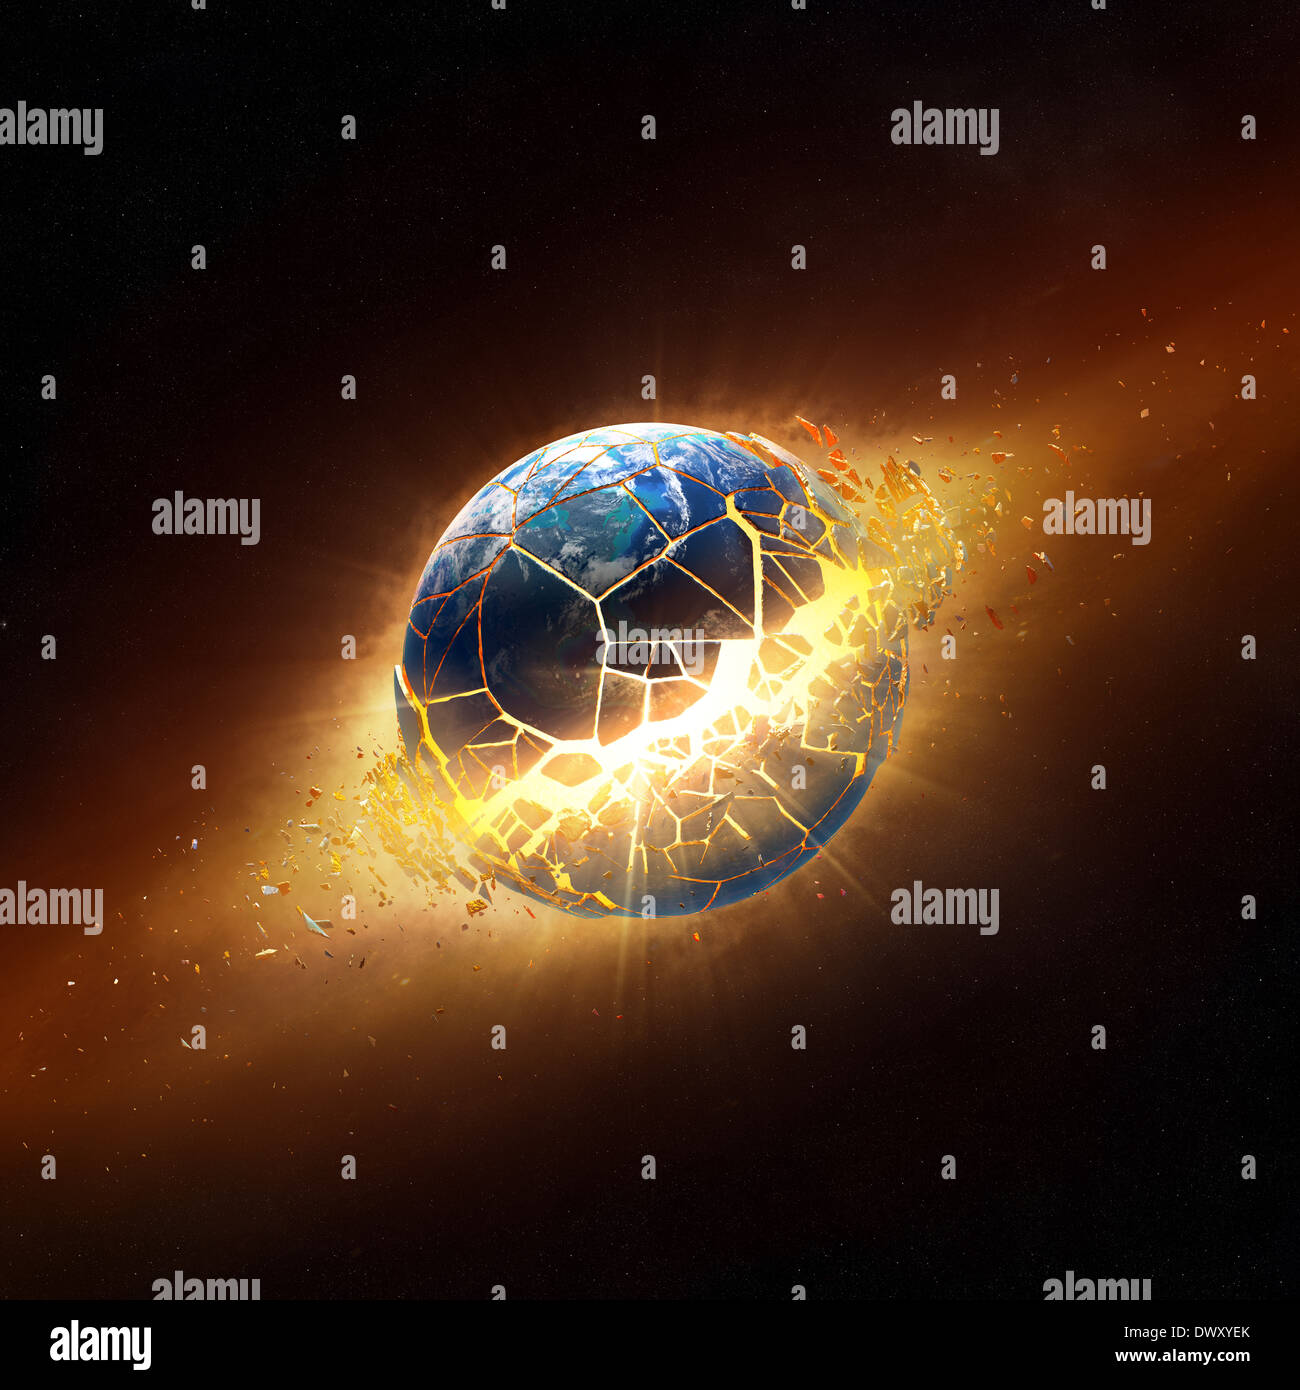 Planet earth explode in space (Elements of this 3d image furnished by NASA - texture maps from http://visibleearth.nasa.gov/) - Stock Image